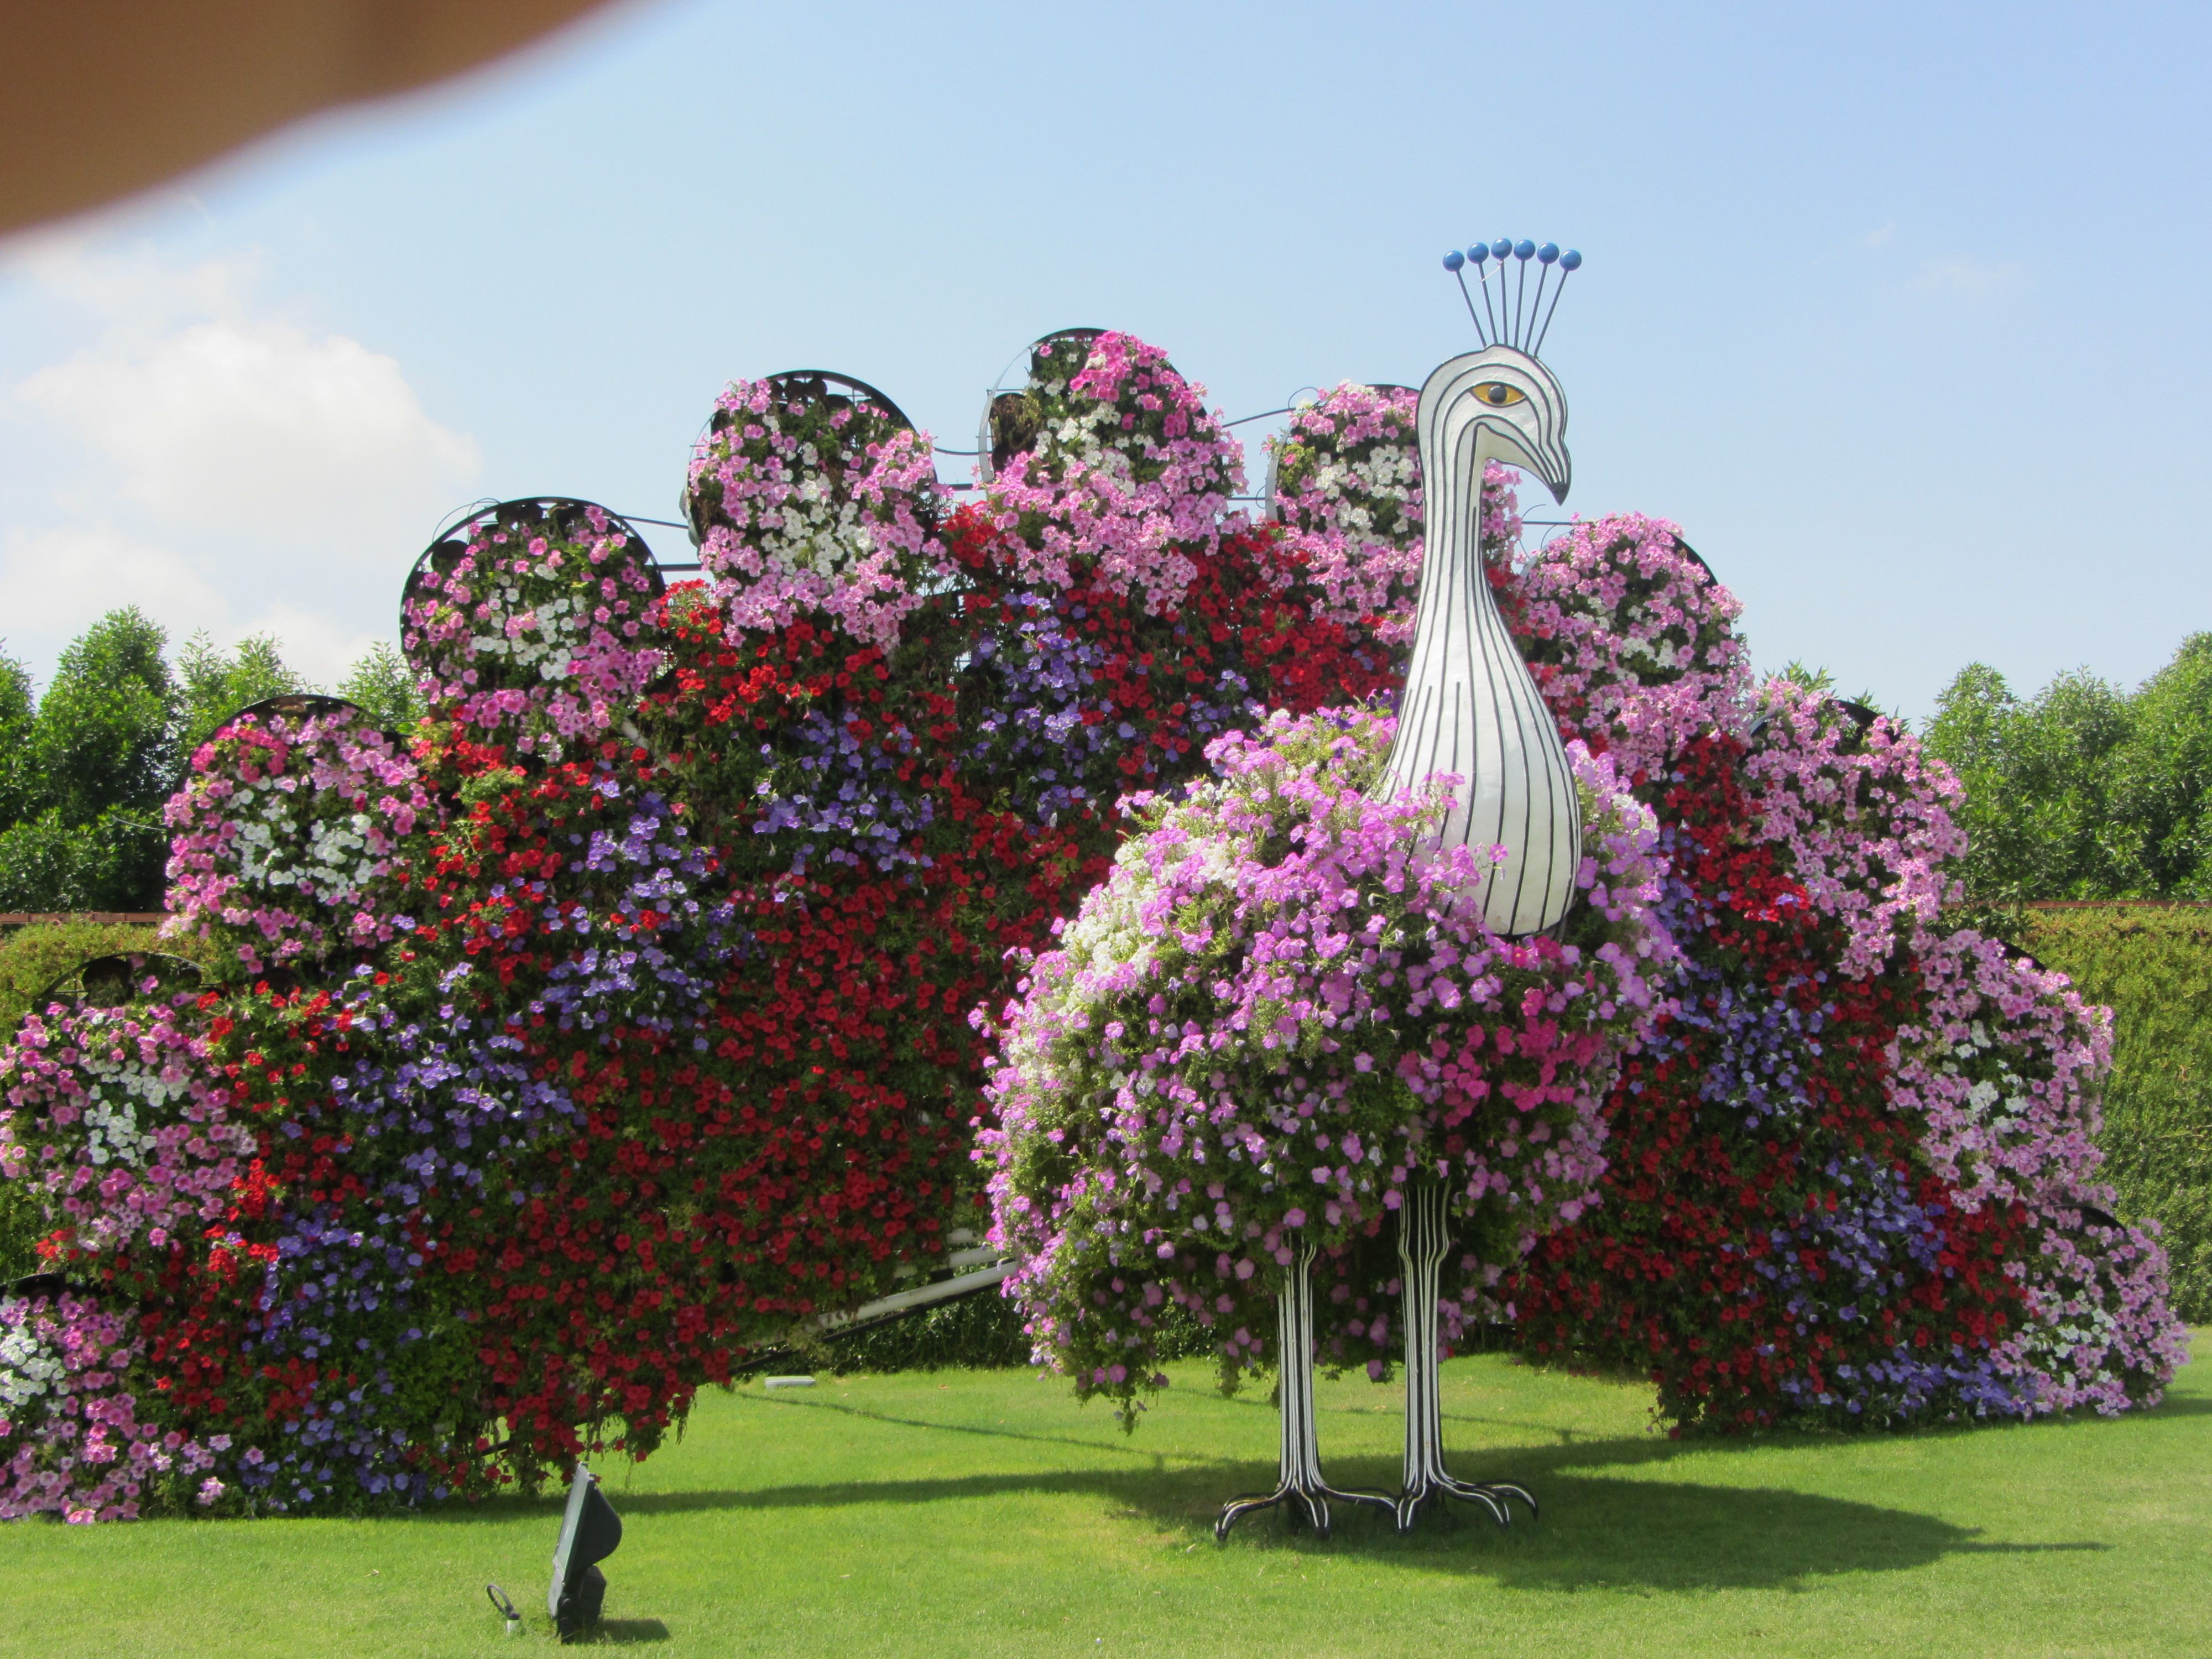 Peacock made out of flowers at Miracle Garden, Dubai